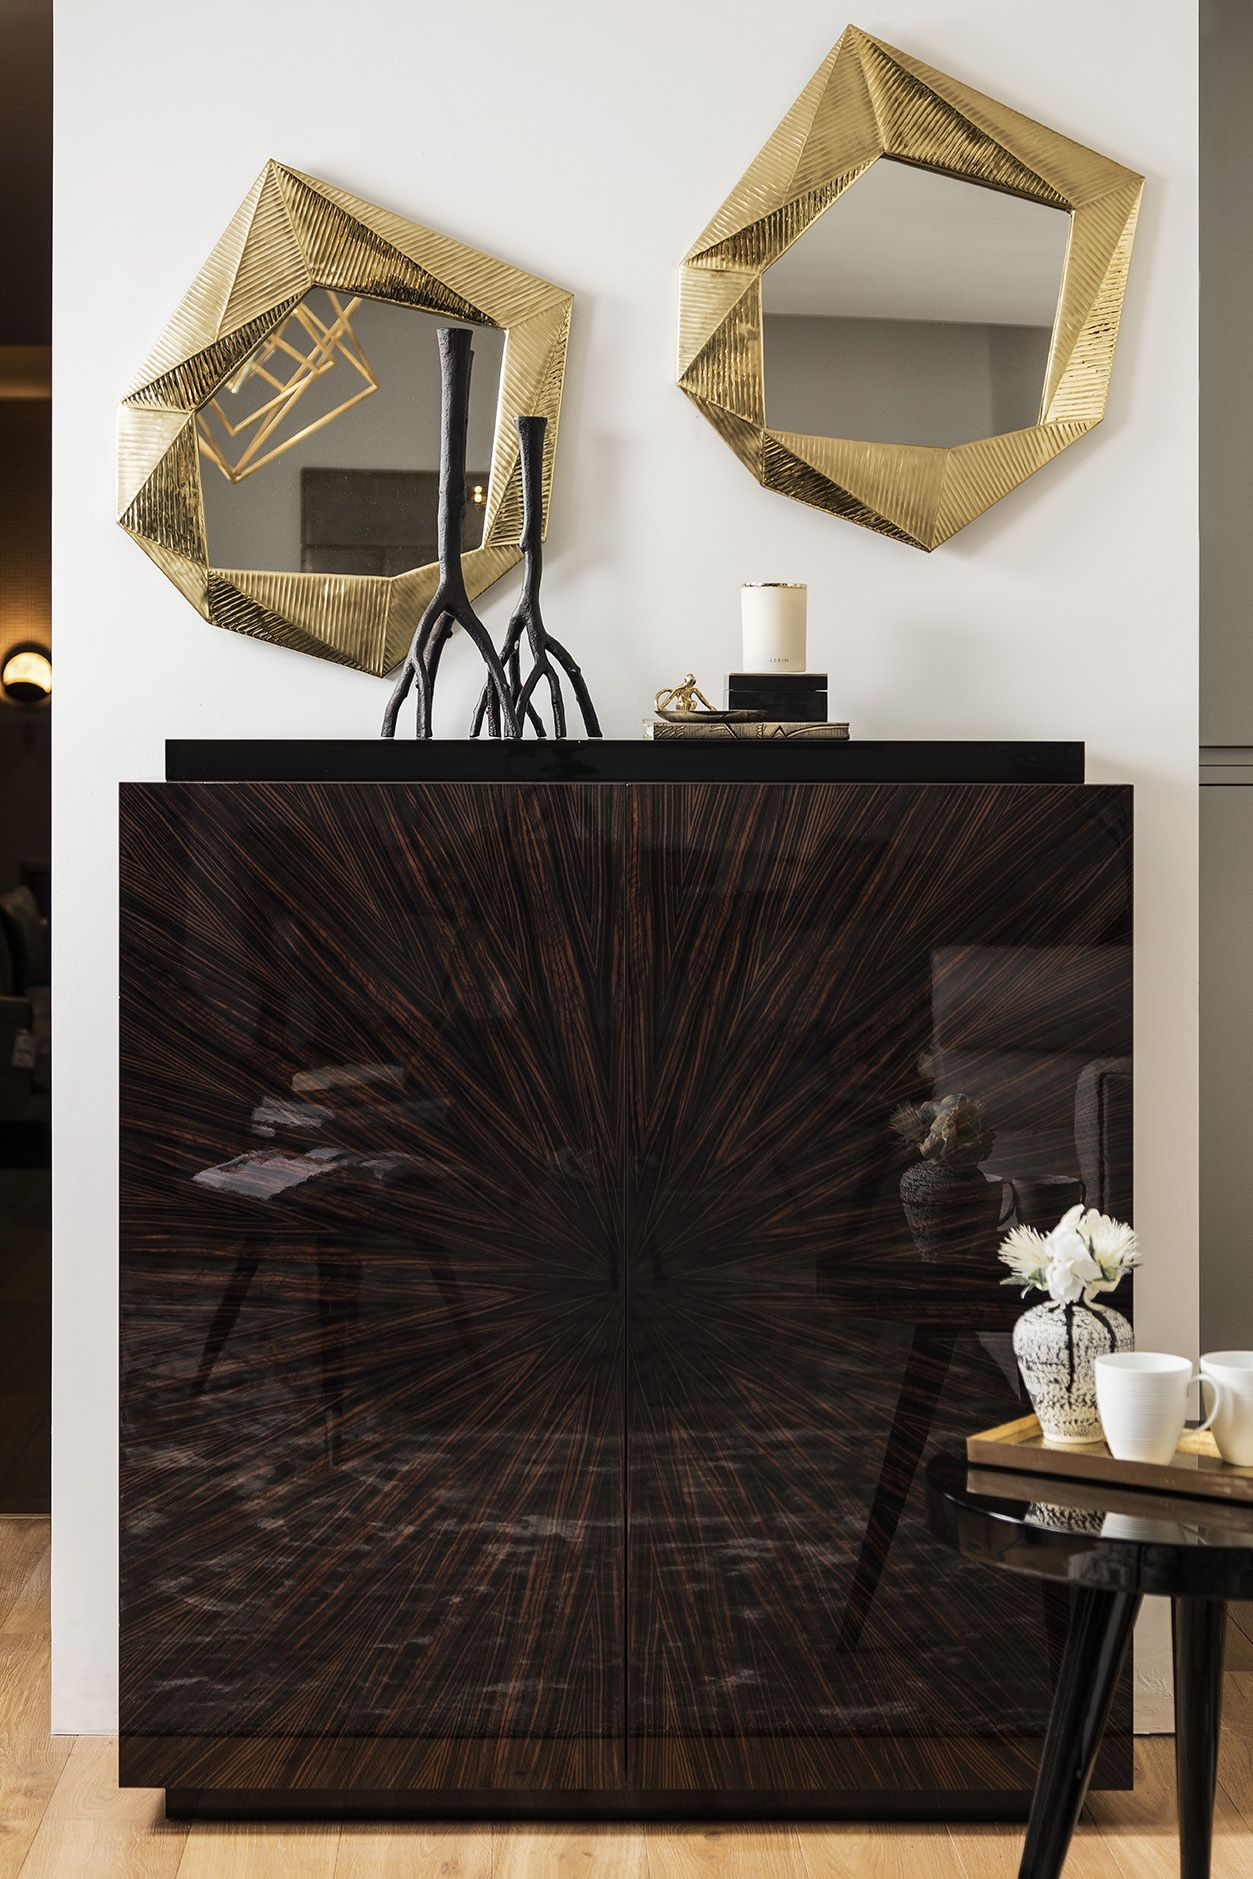 ASHBY ART DECO-INSPIRED LIVING ROOM CABINET. The exquisite ...